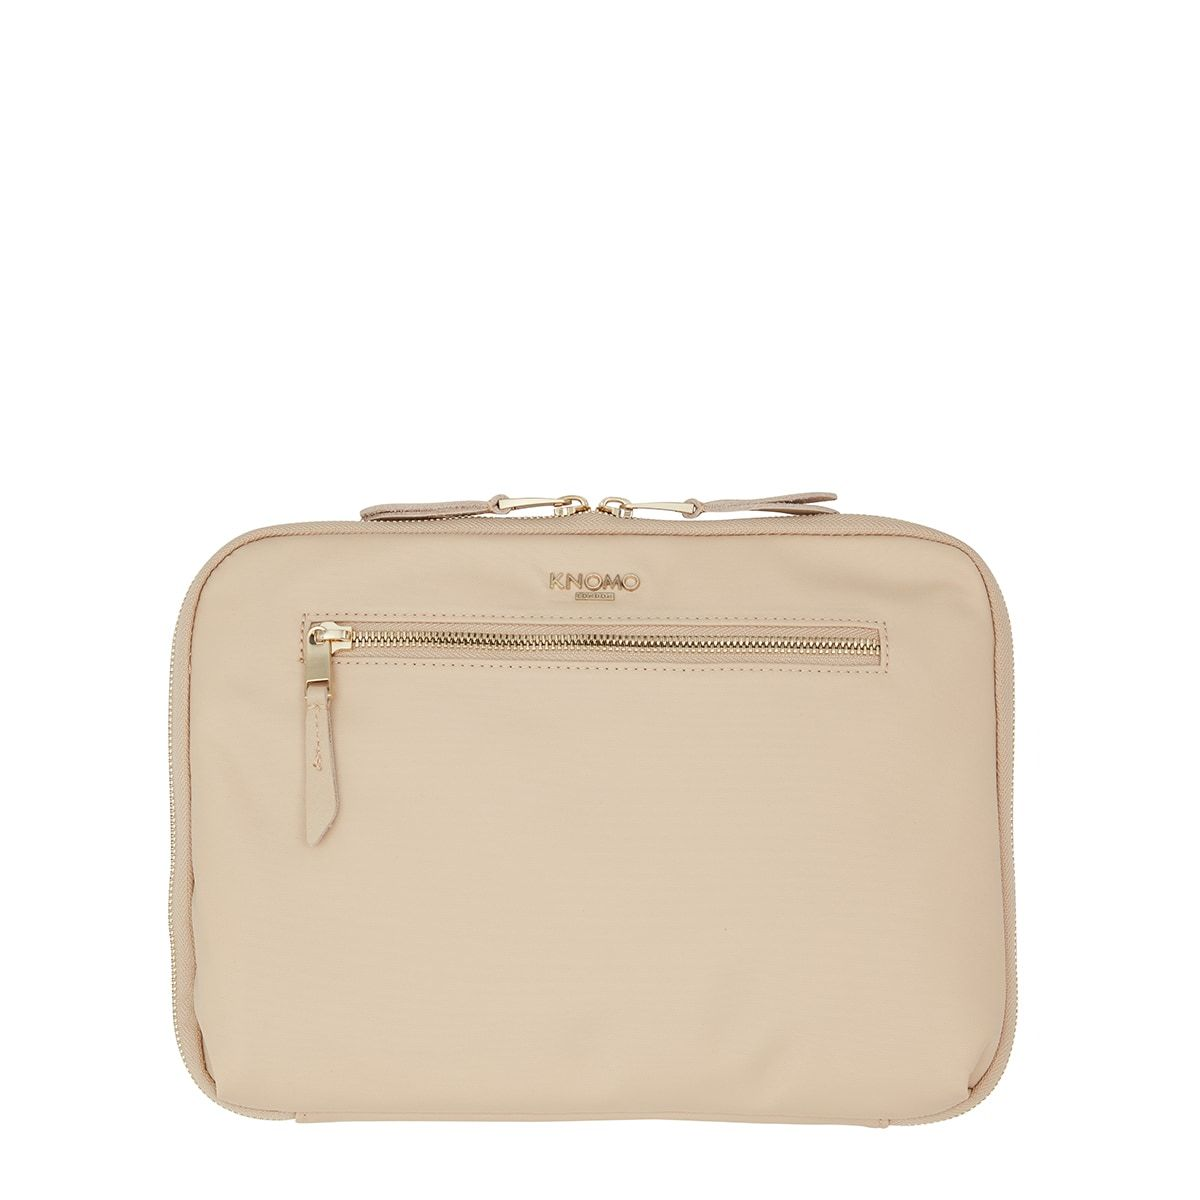 "KNOMO Knomad X-Body Organiser Tech Organiser From Front 10.5"" -  Trench Beige 